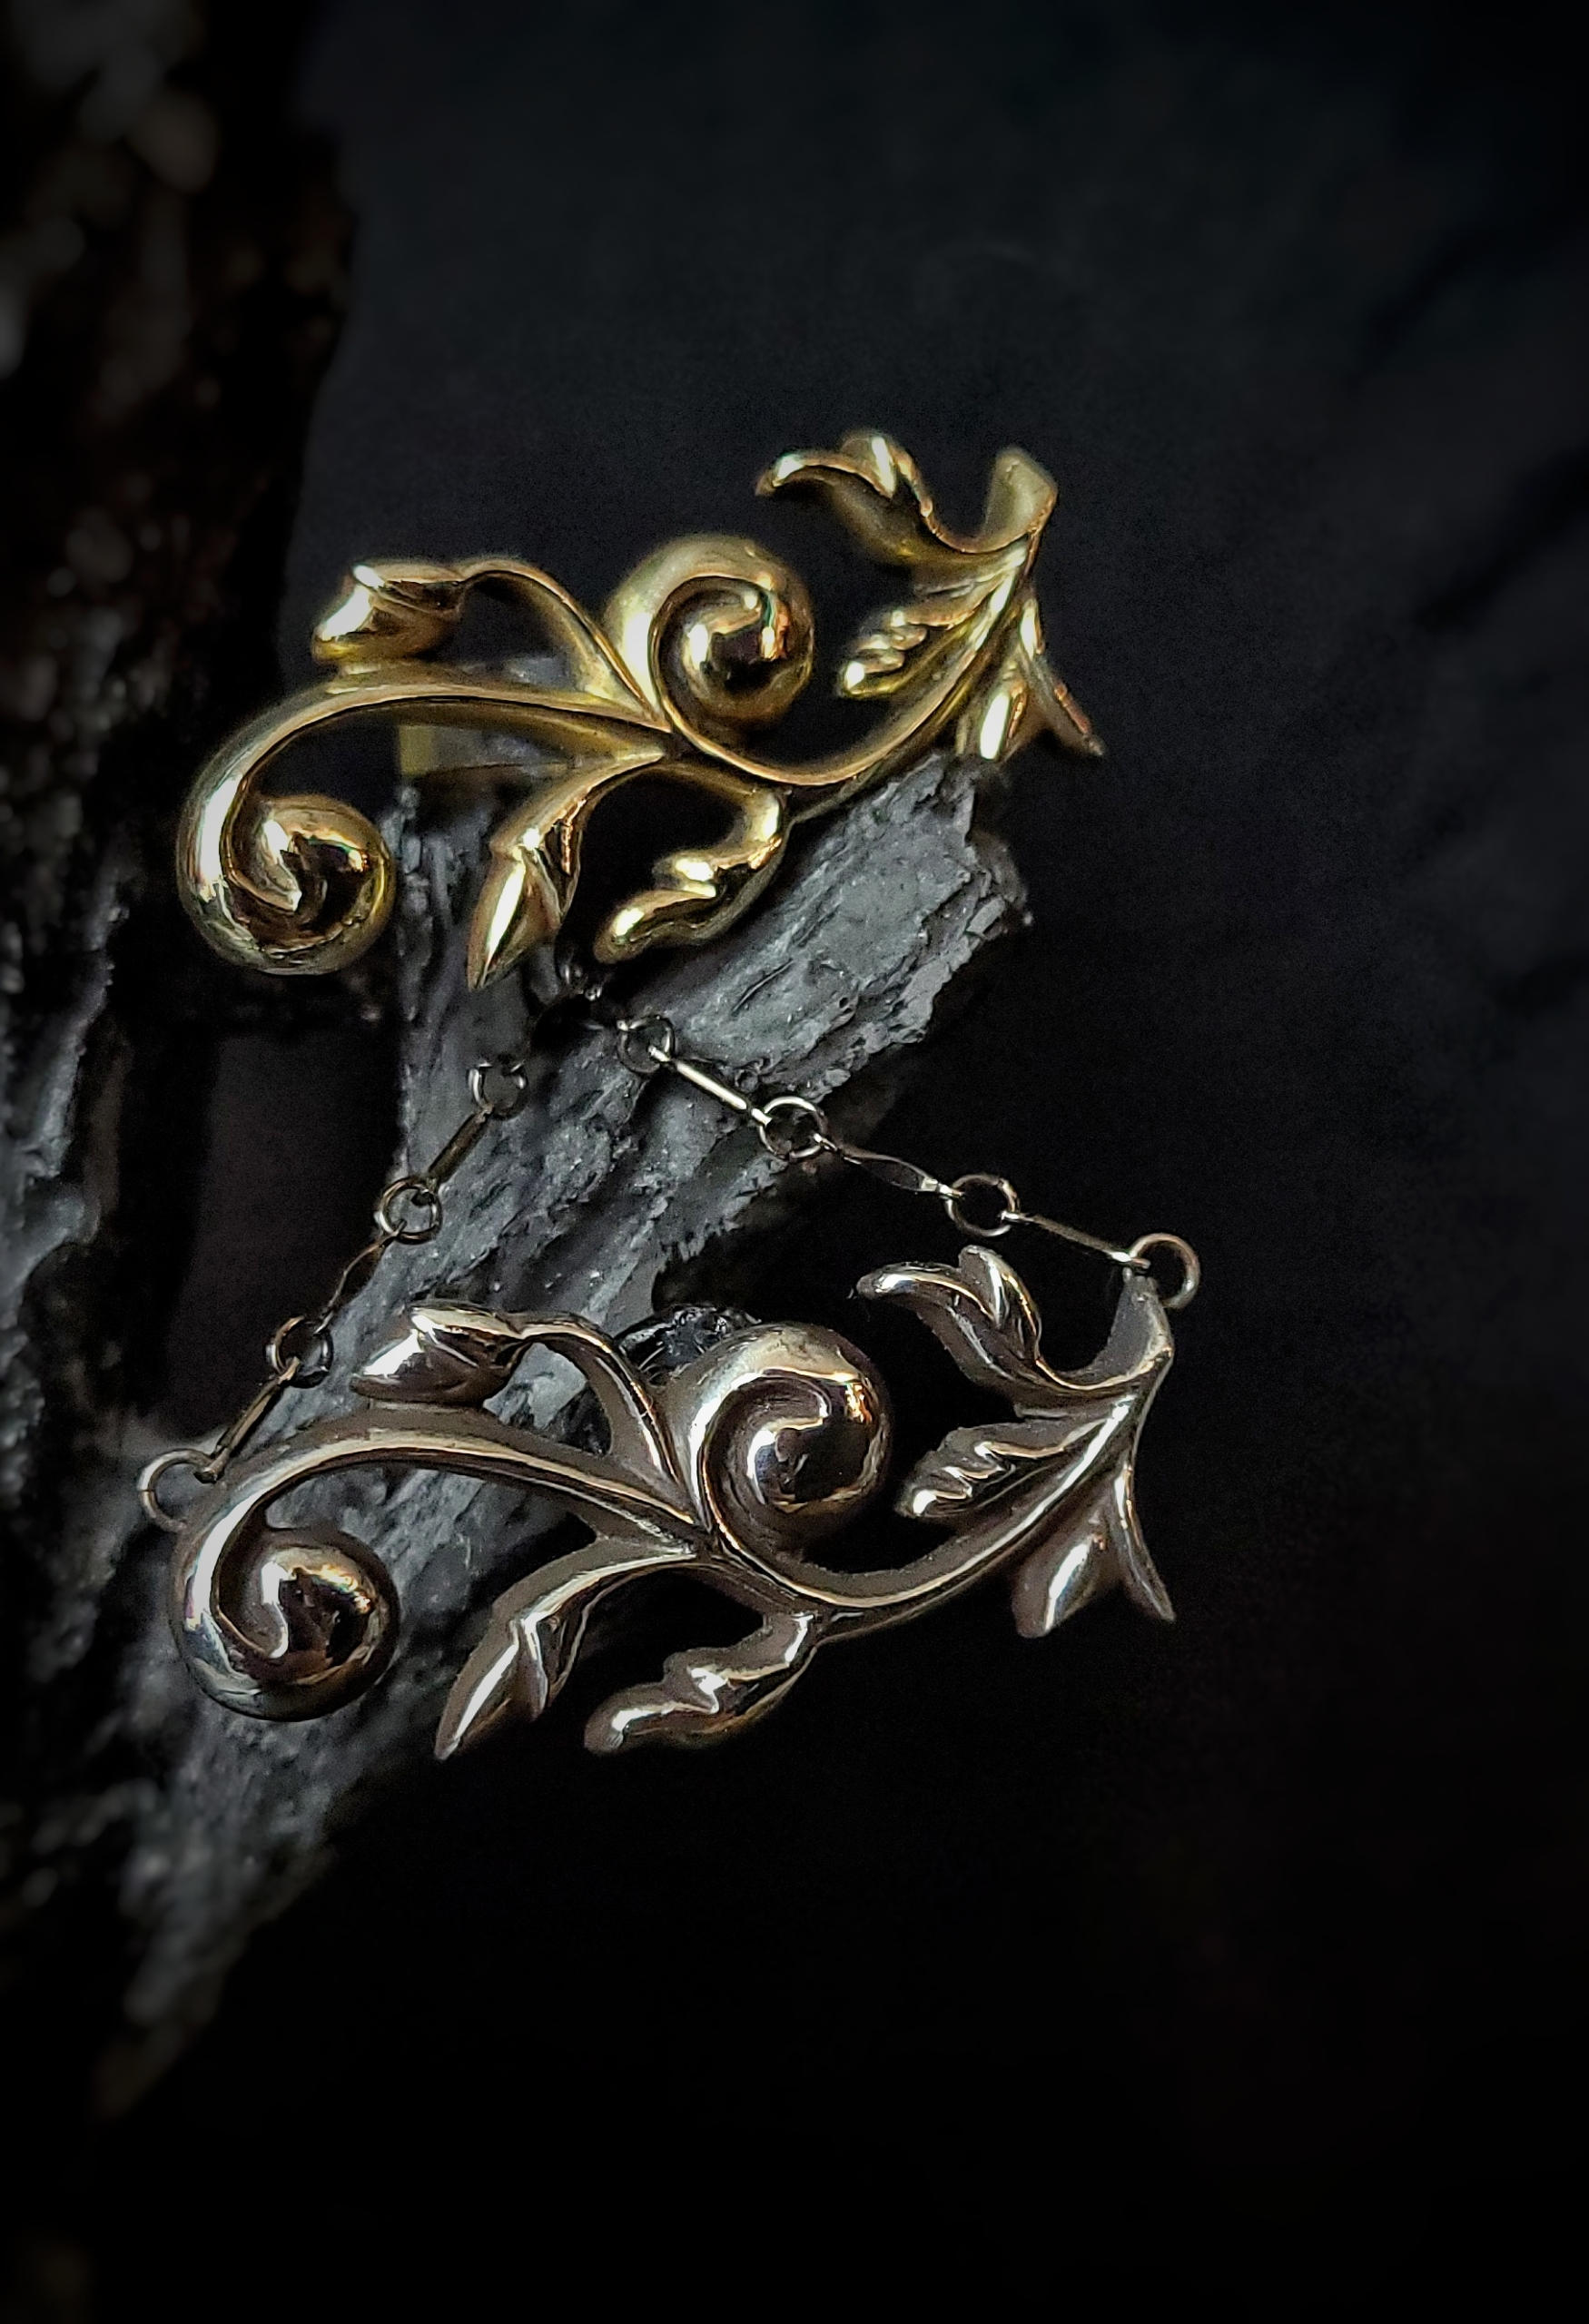 Hoard Jewels, Lucifleurr and Tess – One and the same!